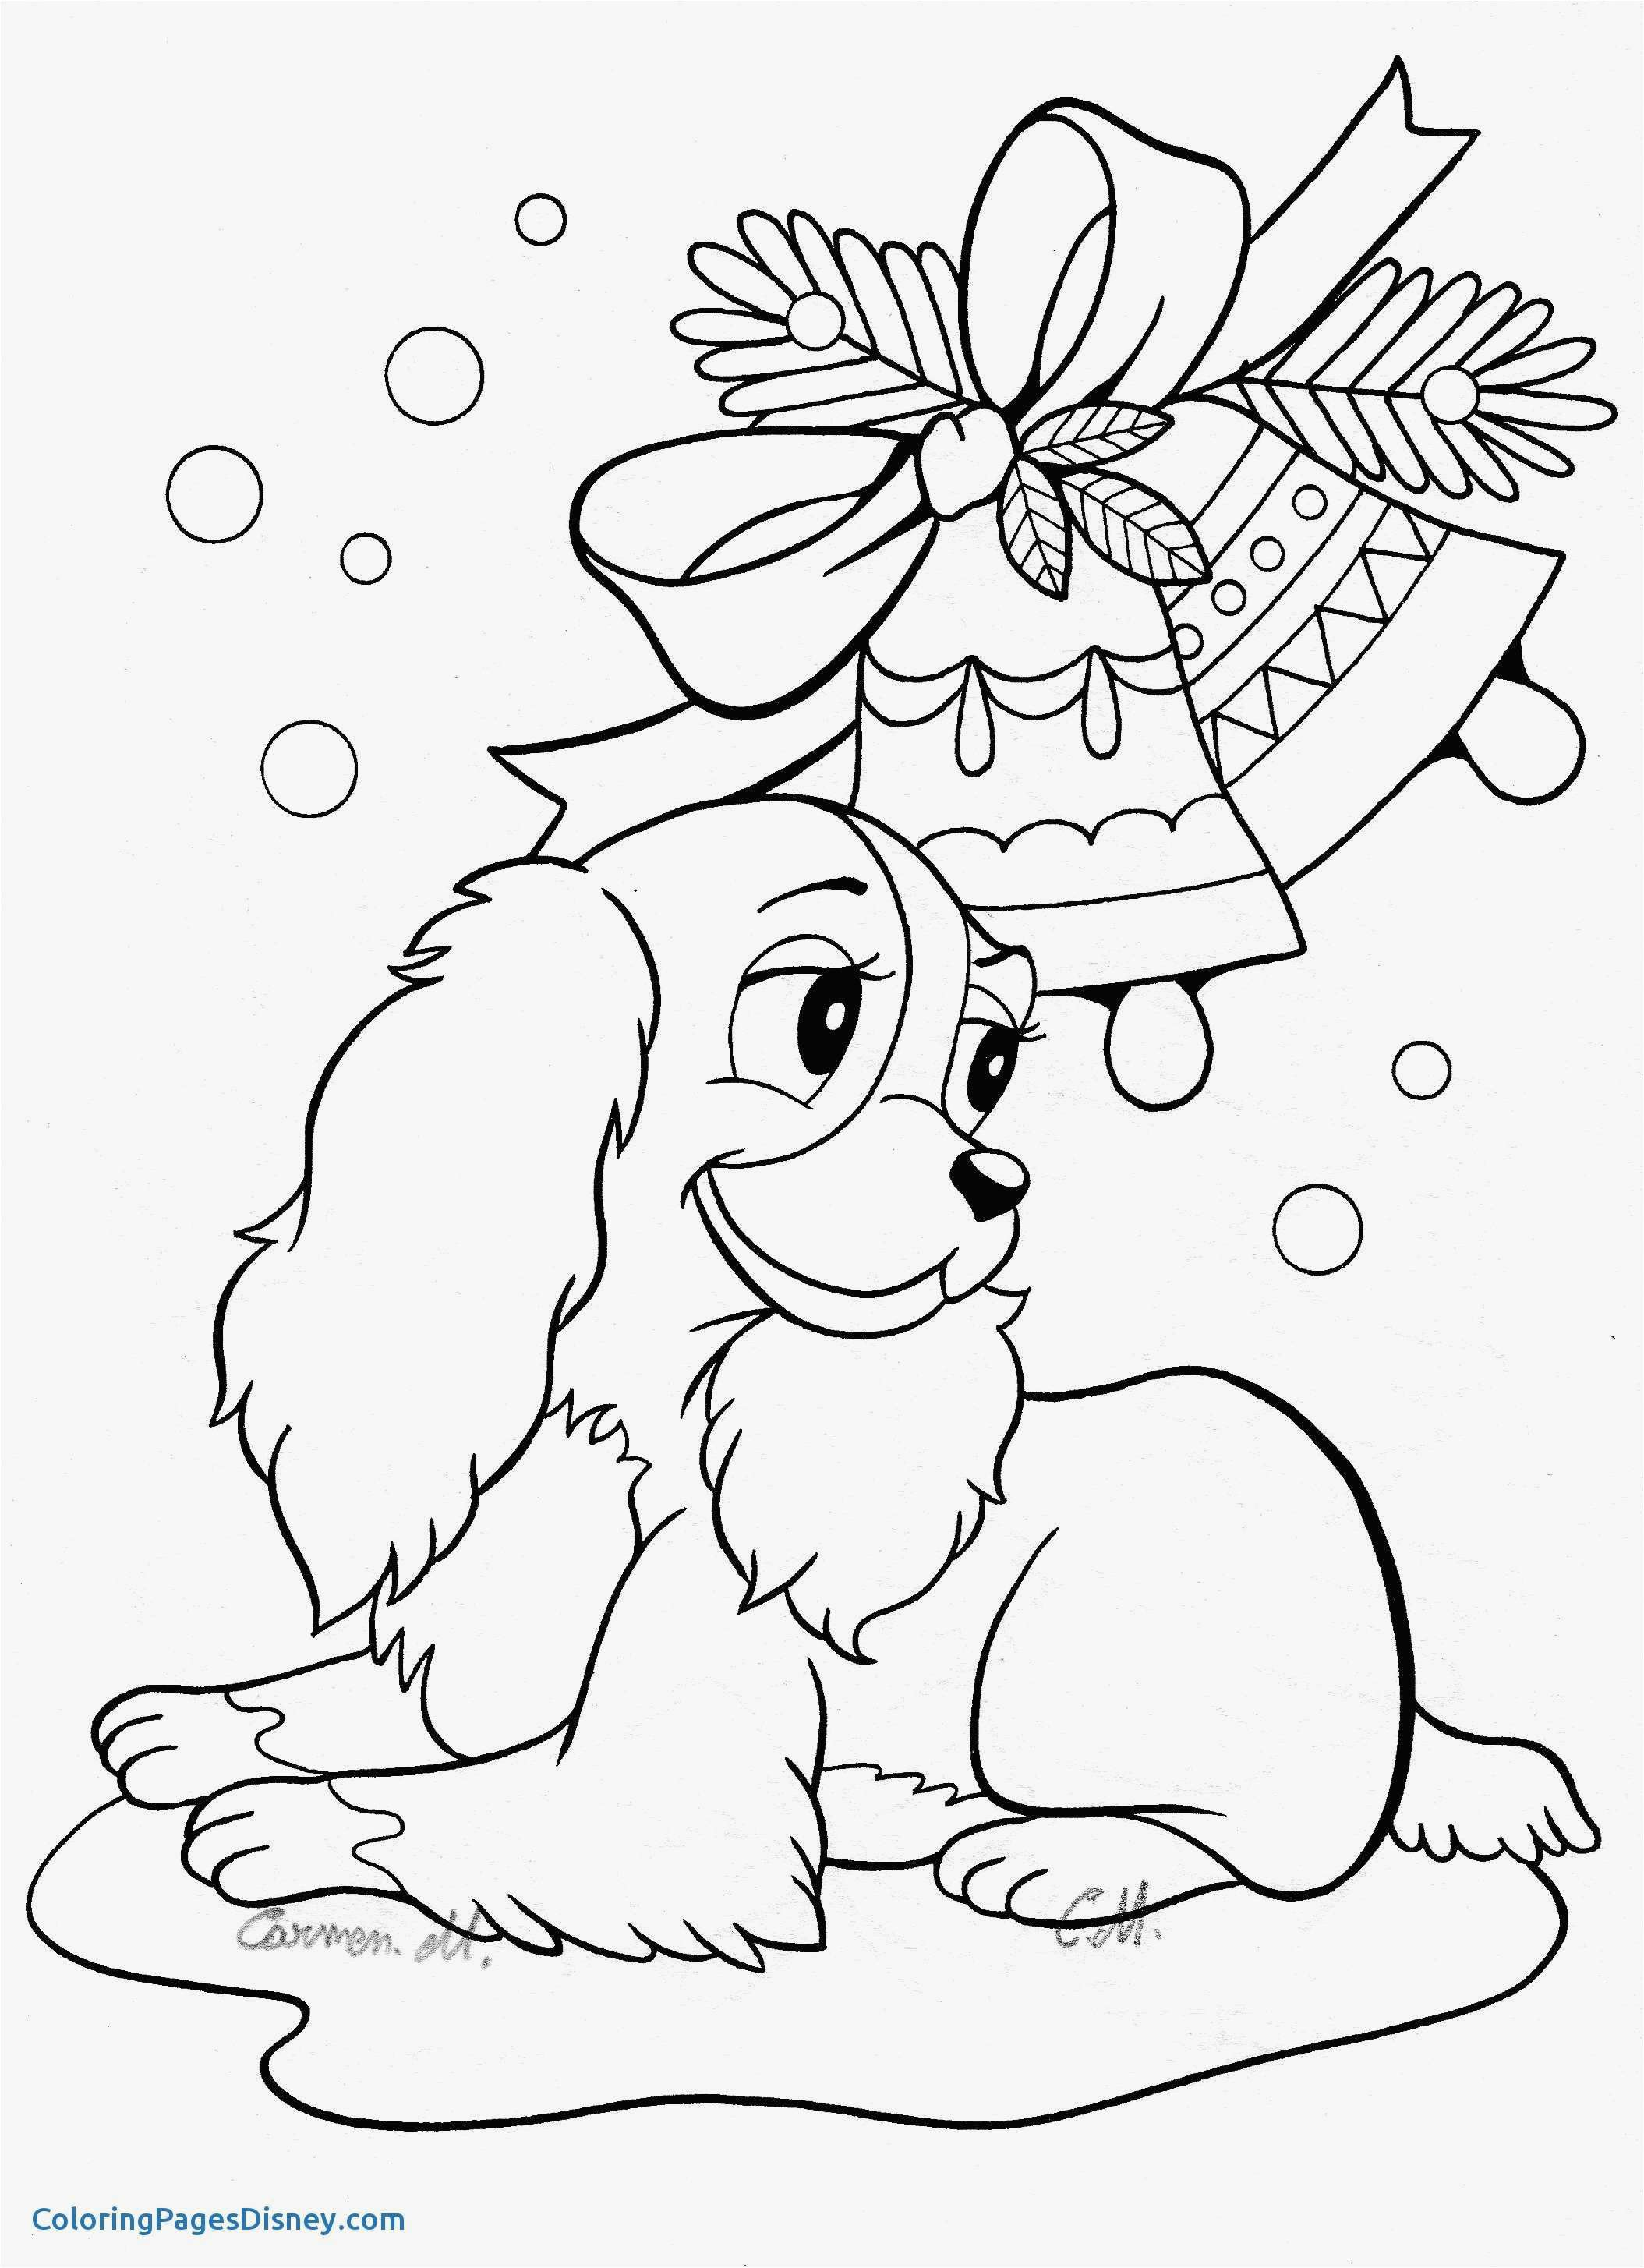 Australian Santa Coloring Page With Christmas Colouring In Pages Twinkl 2 Printable For